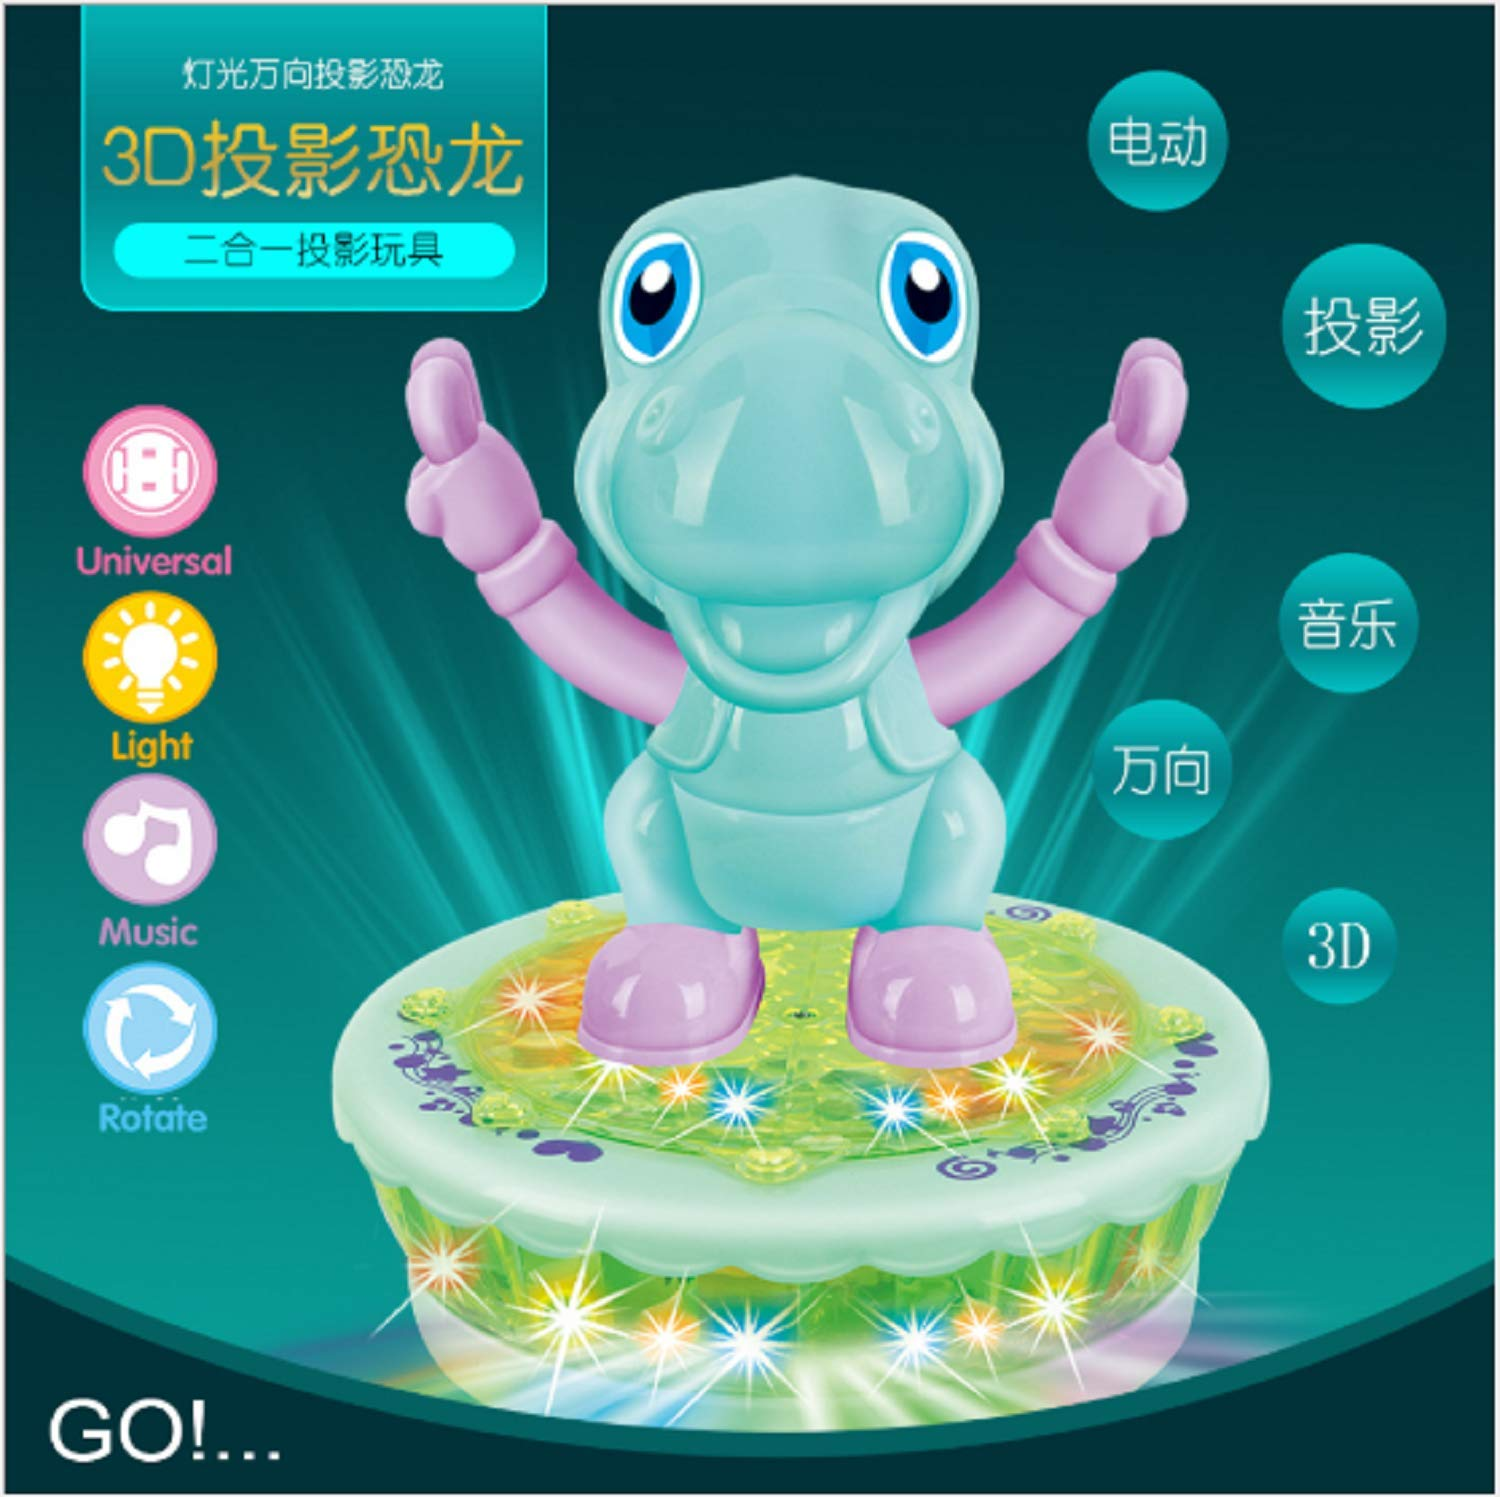 Cindere Electric Sound Light Projection Cartoon Rotating Toy Car with Light Music Universal Toy Car (Dinosaur-Green)